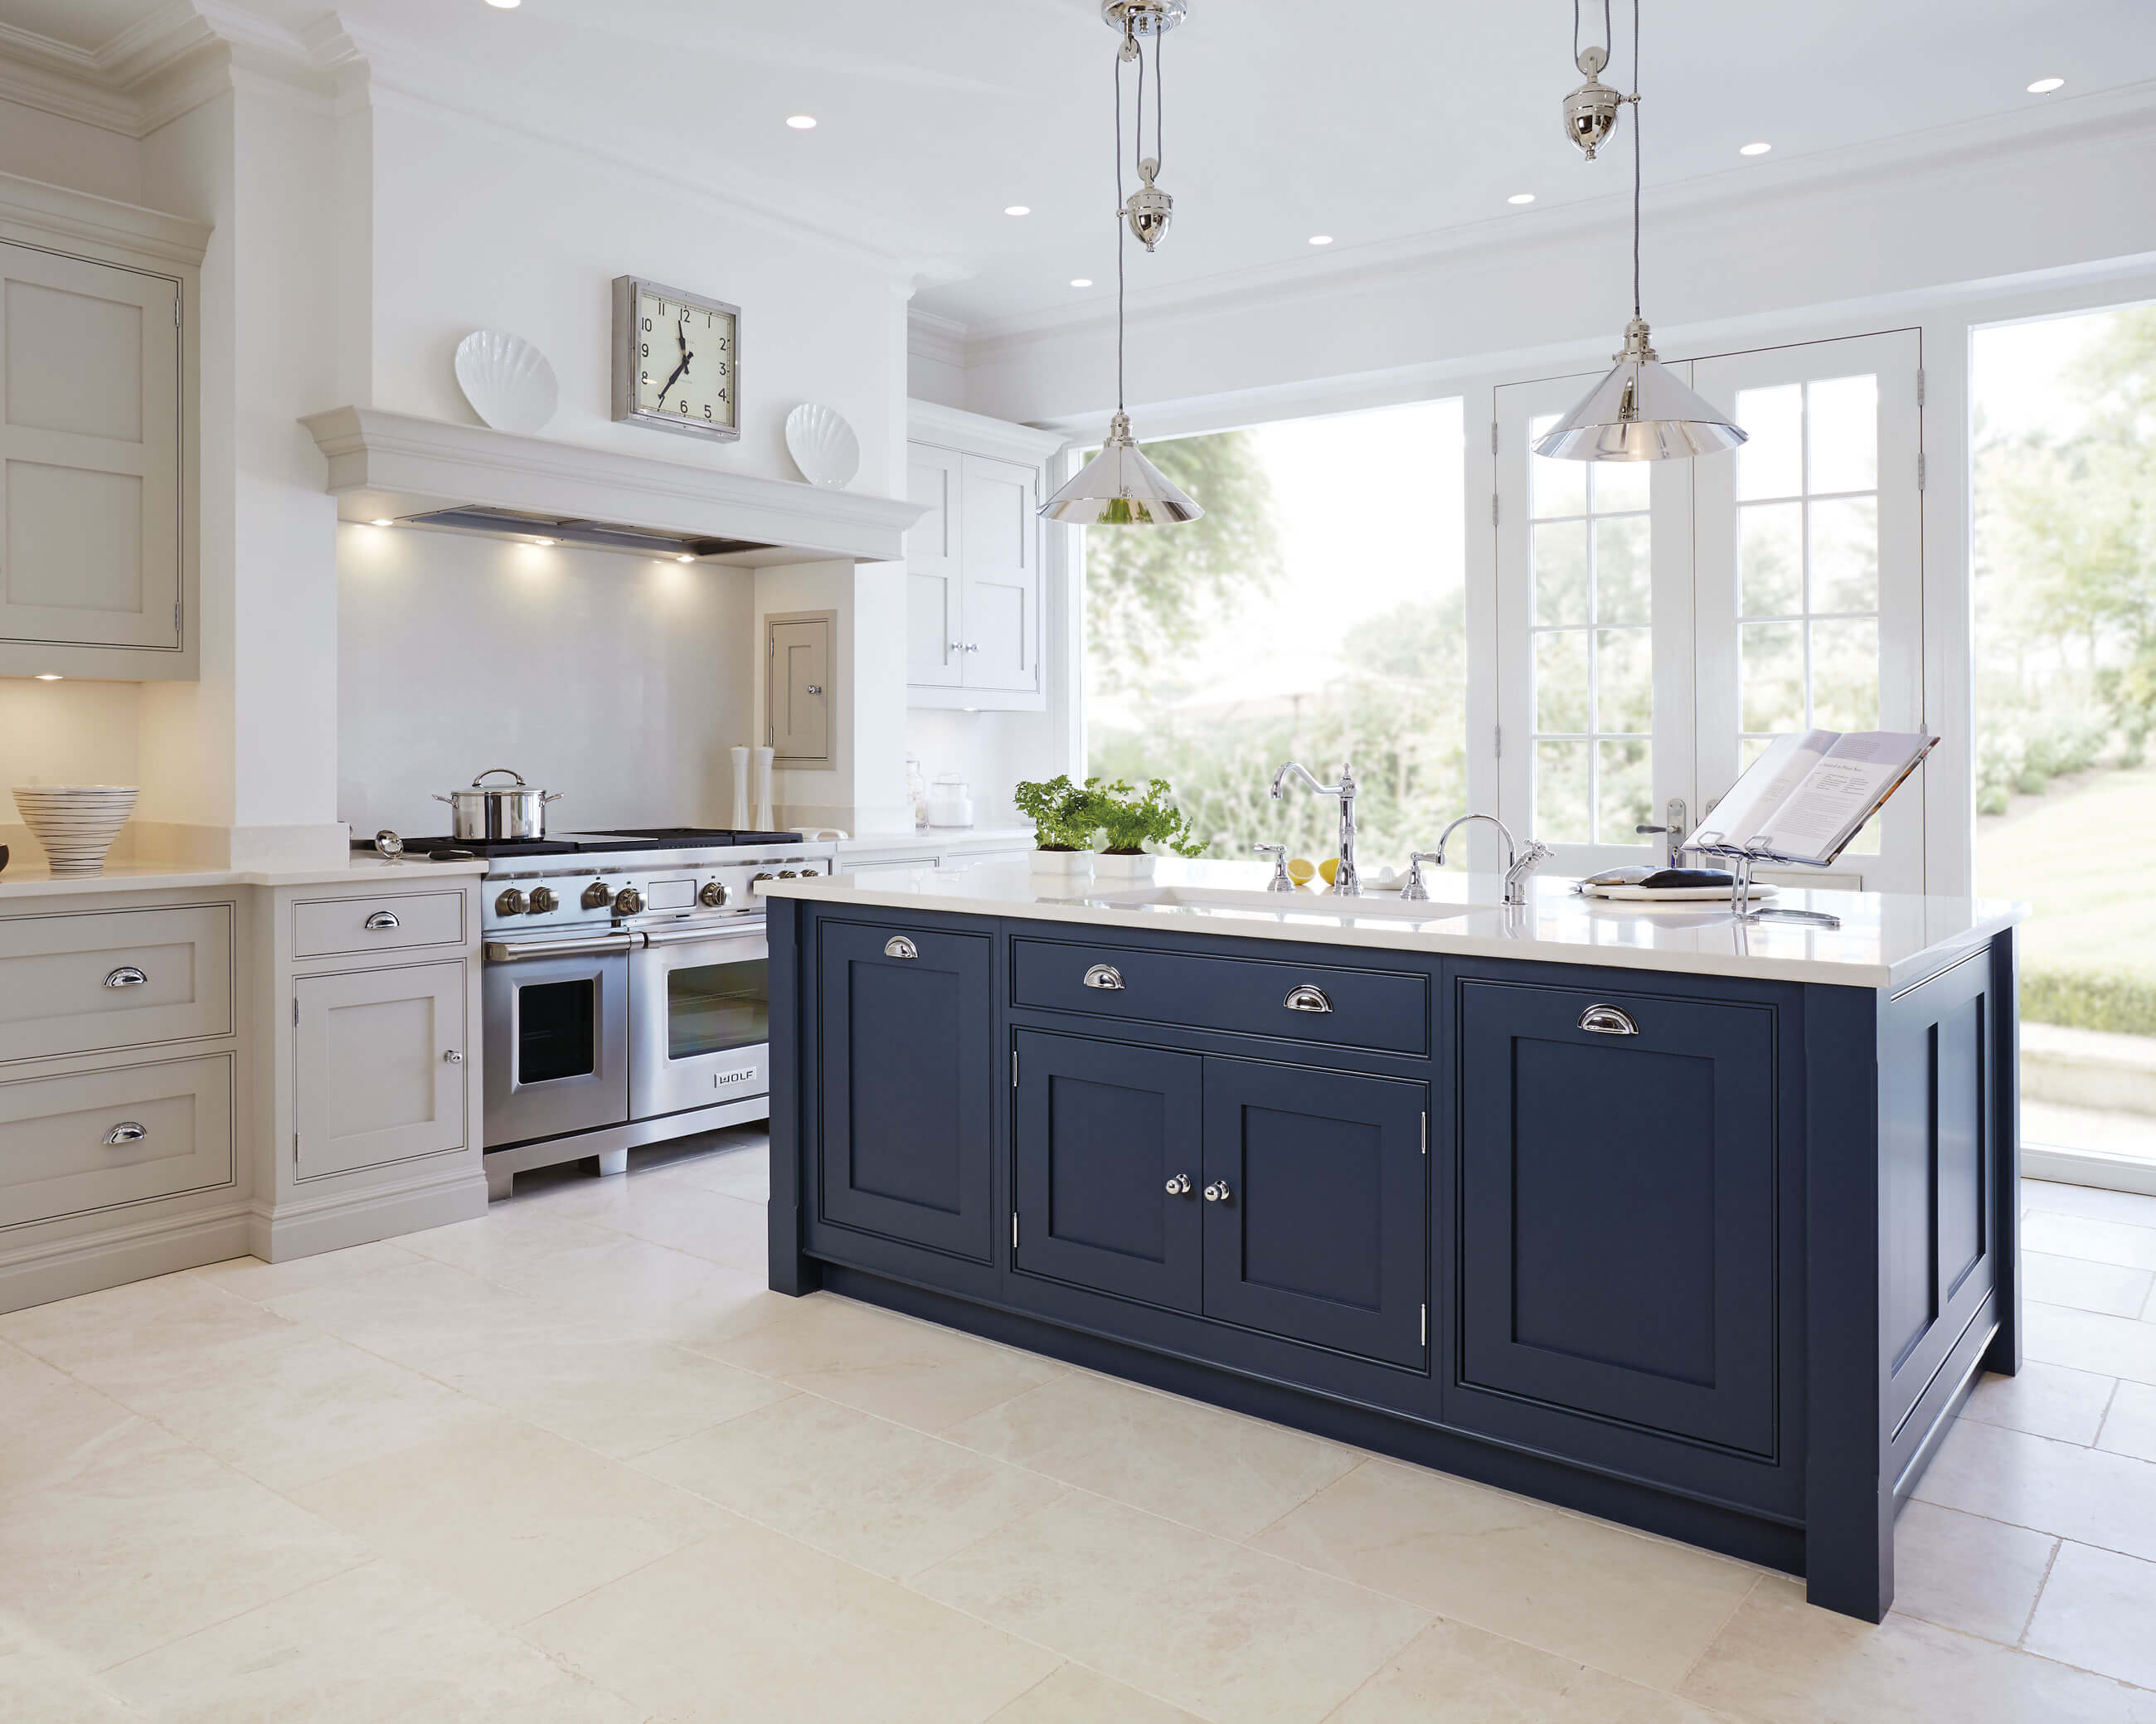 Hand Painted Kitchen Design Ideas ~ Blue painted kitchen tom howley